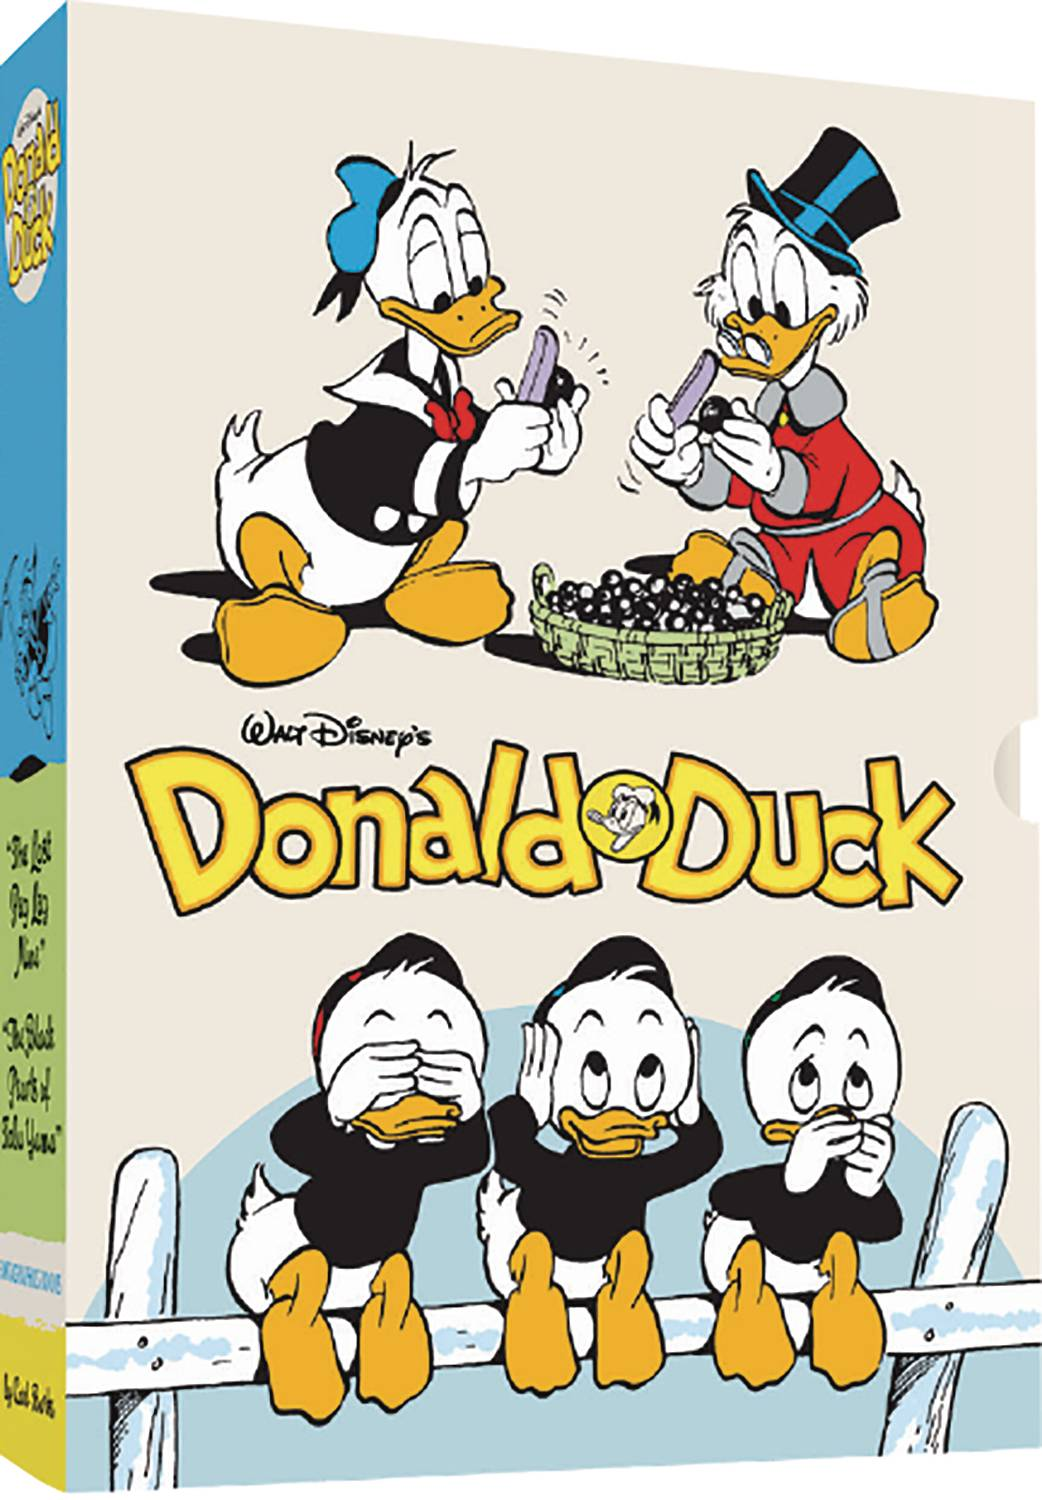 WALT DISNEY DONALD DUCK HC BOX SET PEG LEG BLACK PEARLS